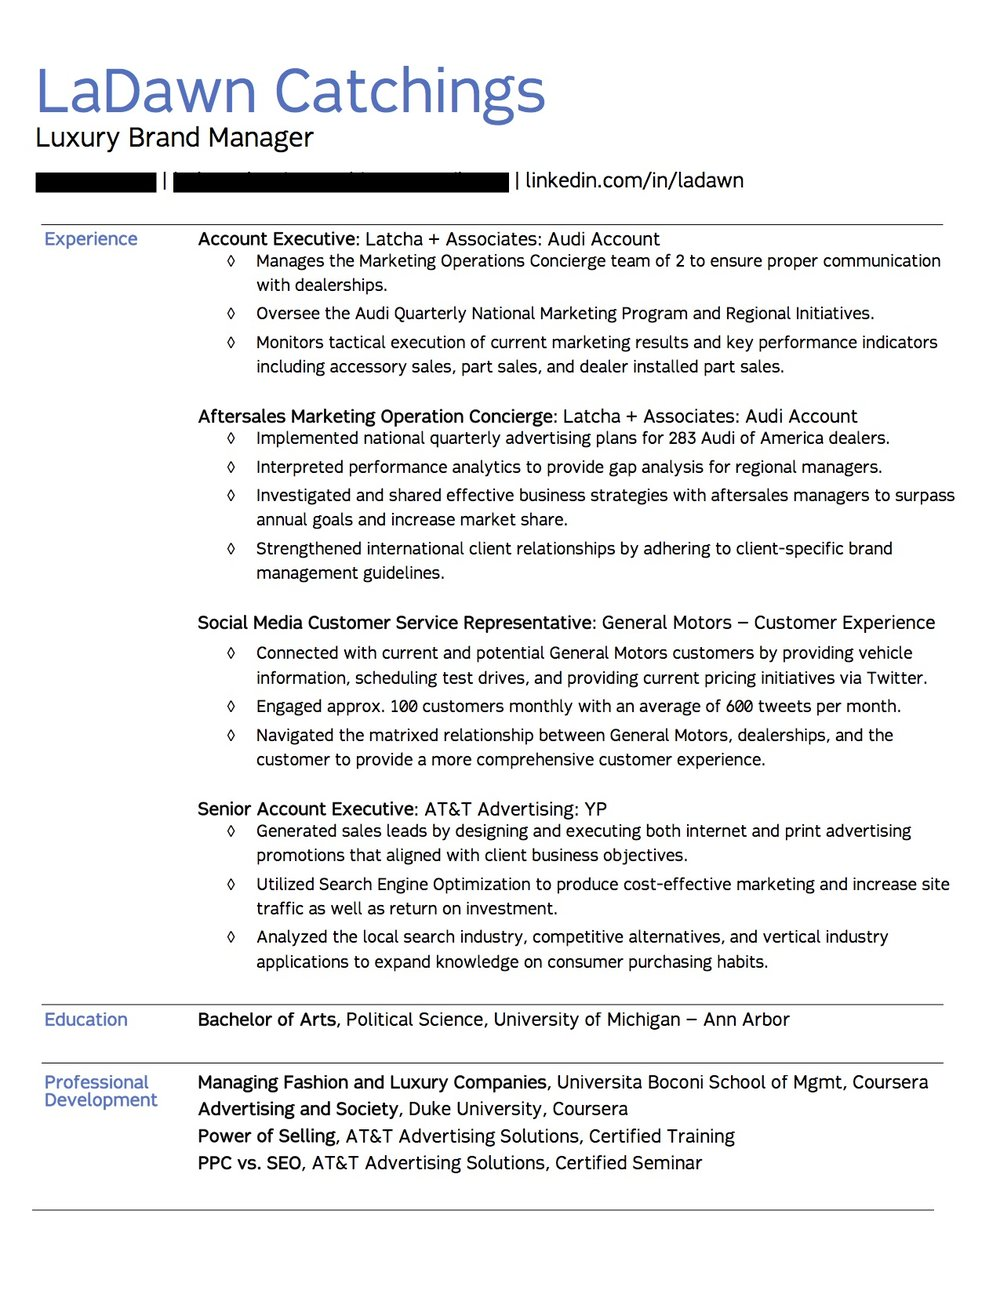 Samples — Layfield Resume Consulting